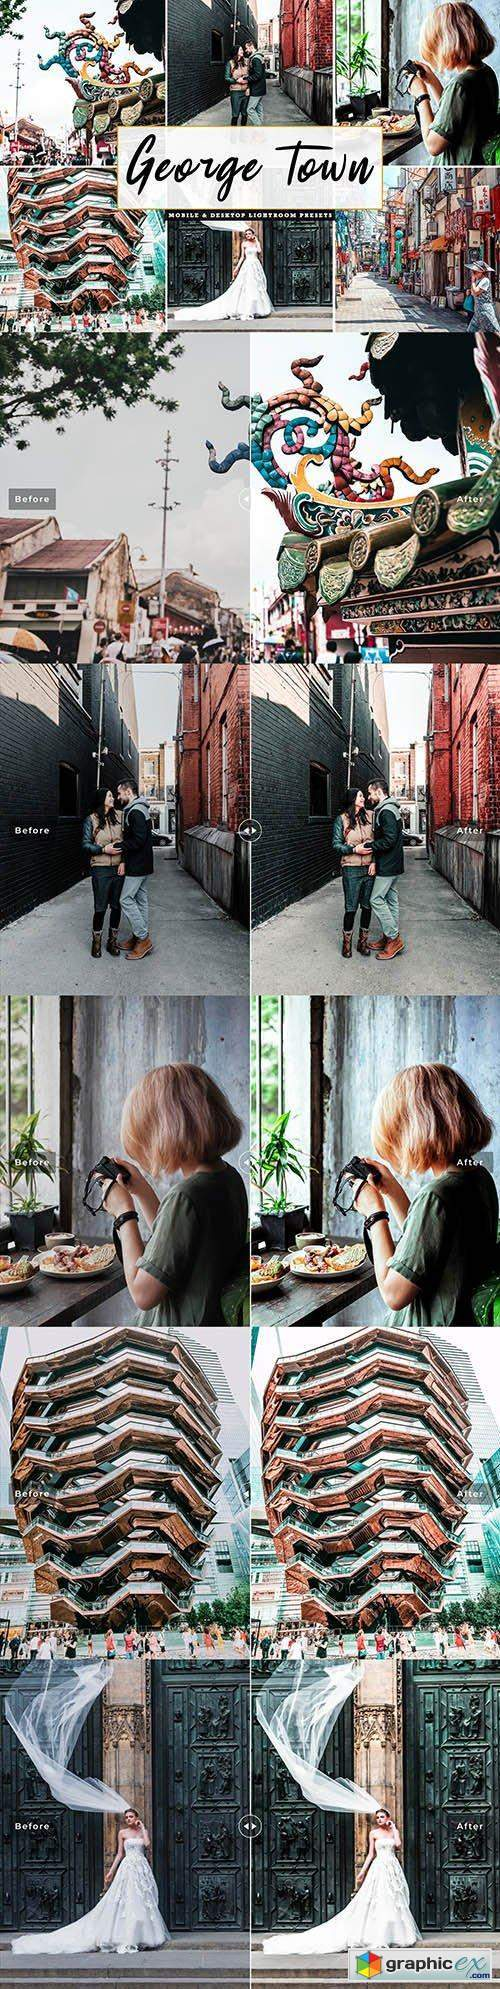 George Town Lightroom Presets Pack